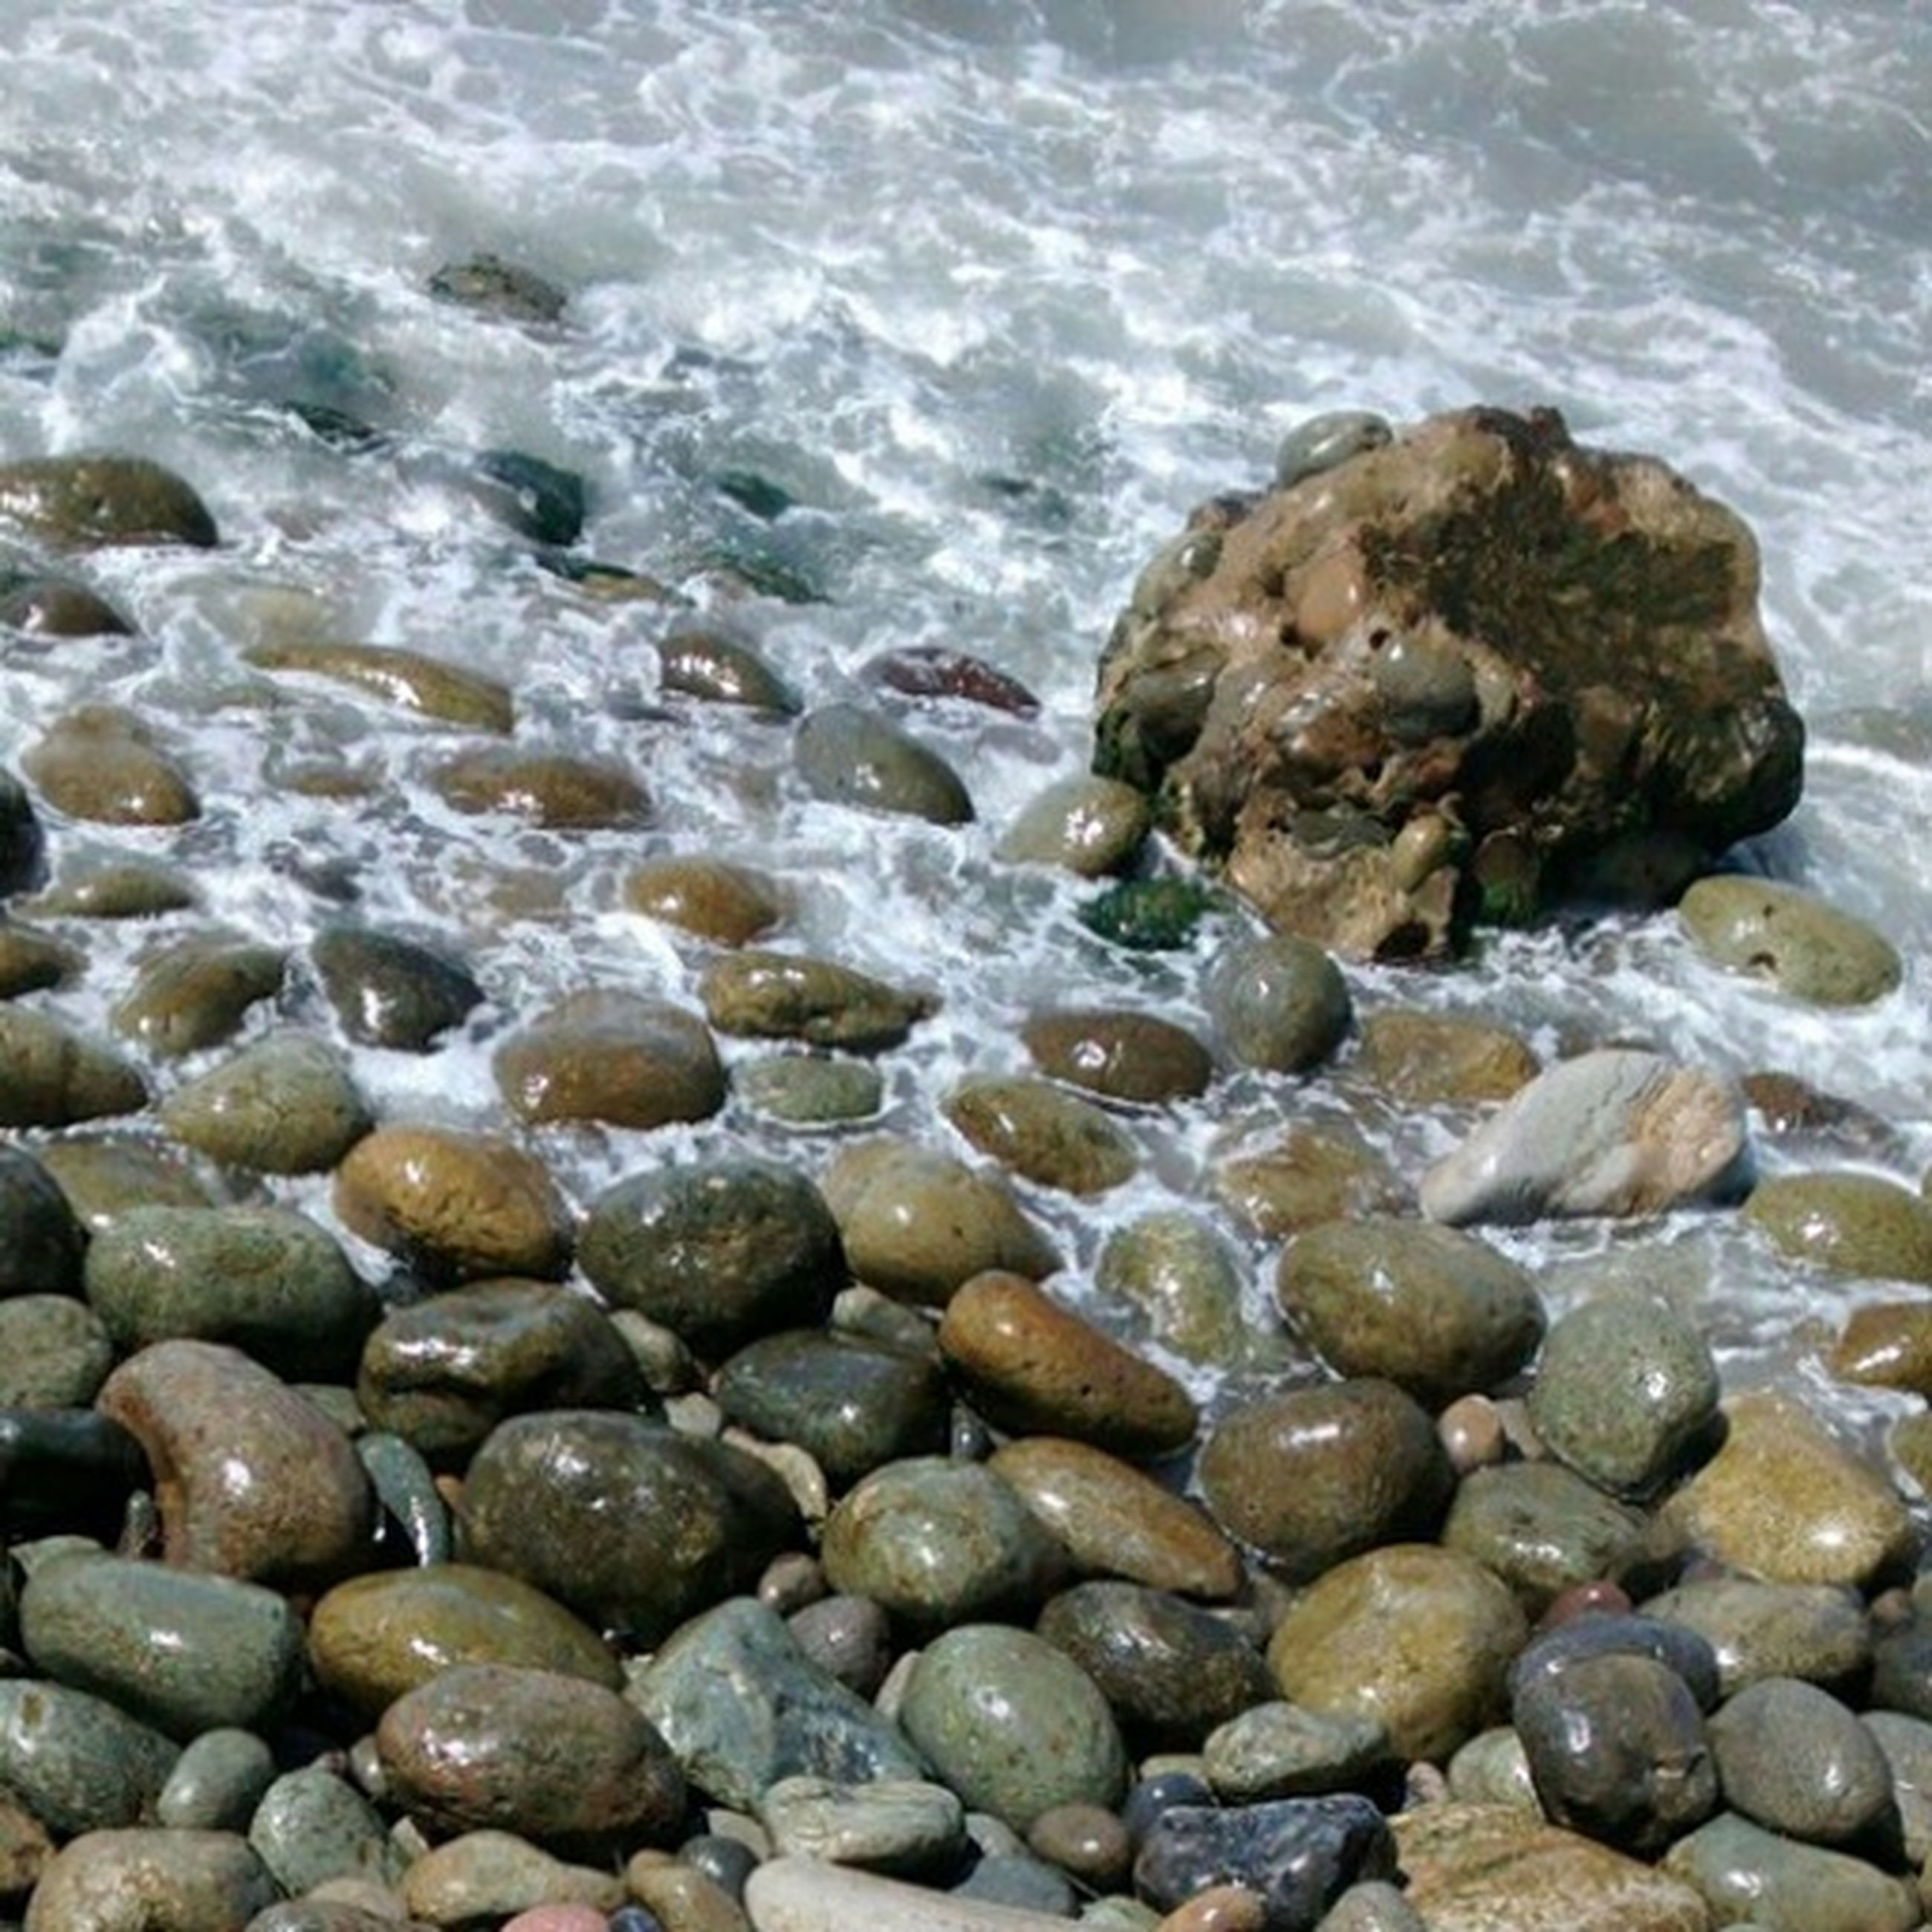 water, sea, beach, rock - object, high angle view, shore, nature, pebble, stone - object, animal themes, day, tranquility, beauty in nature, outdoors, shallow, rippled, rock, no people, wave, sea life